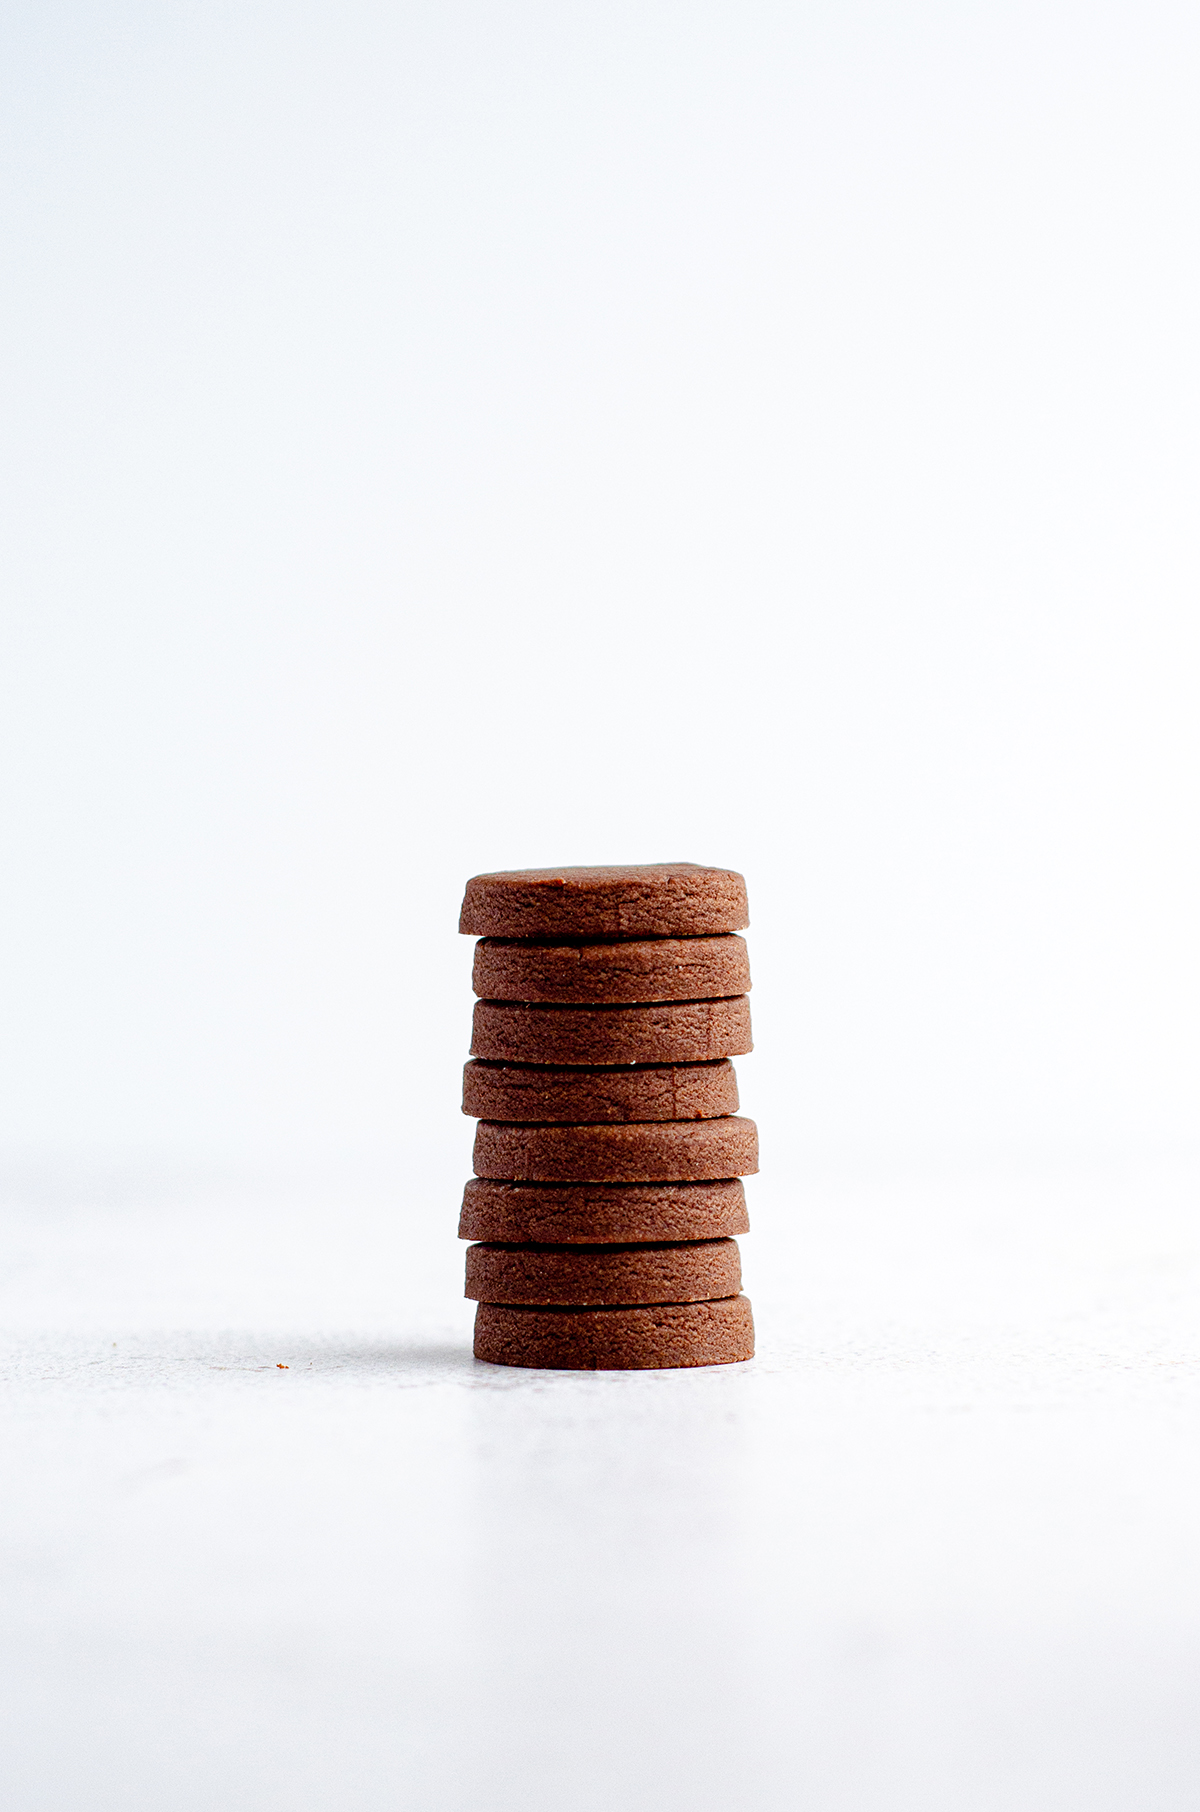 stack of chocolate cut-out sugar cookies